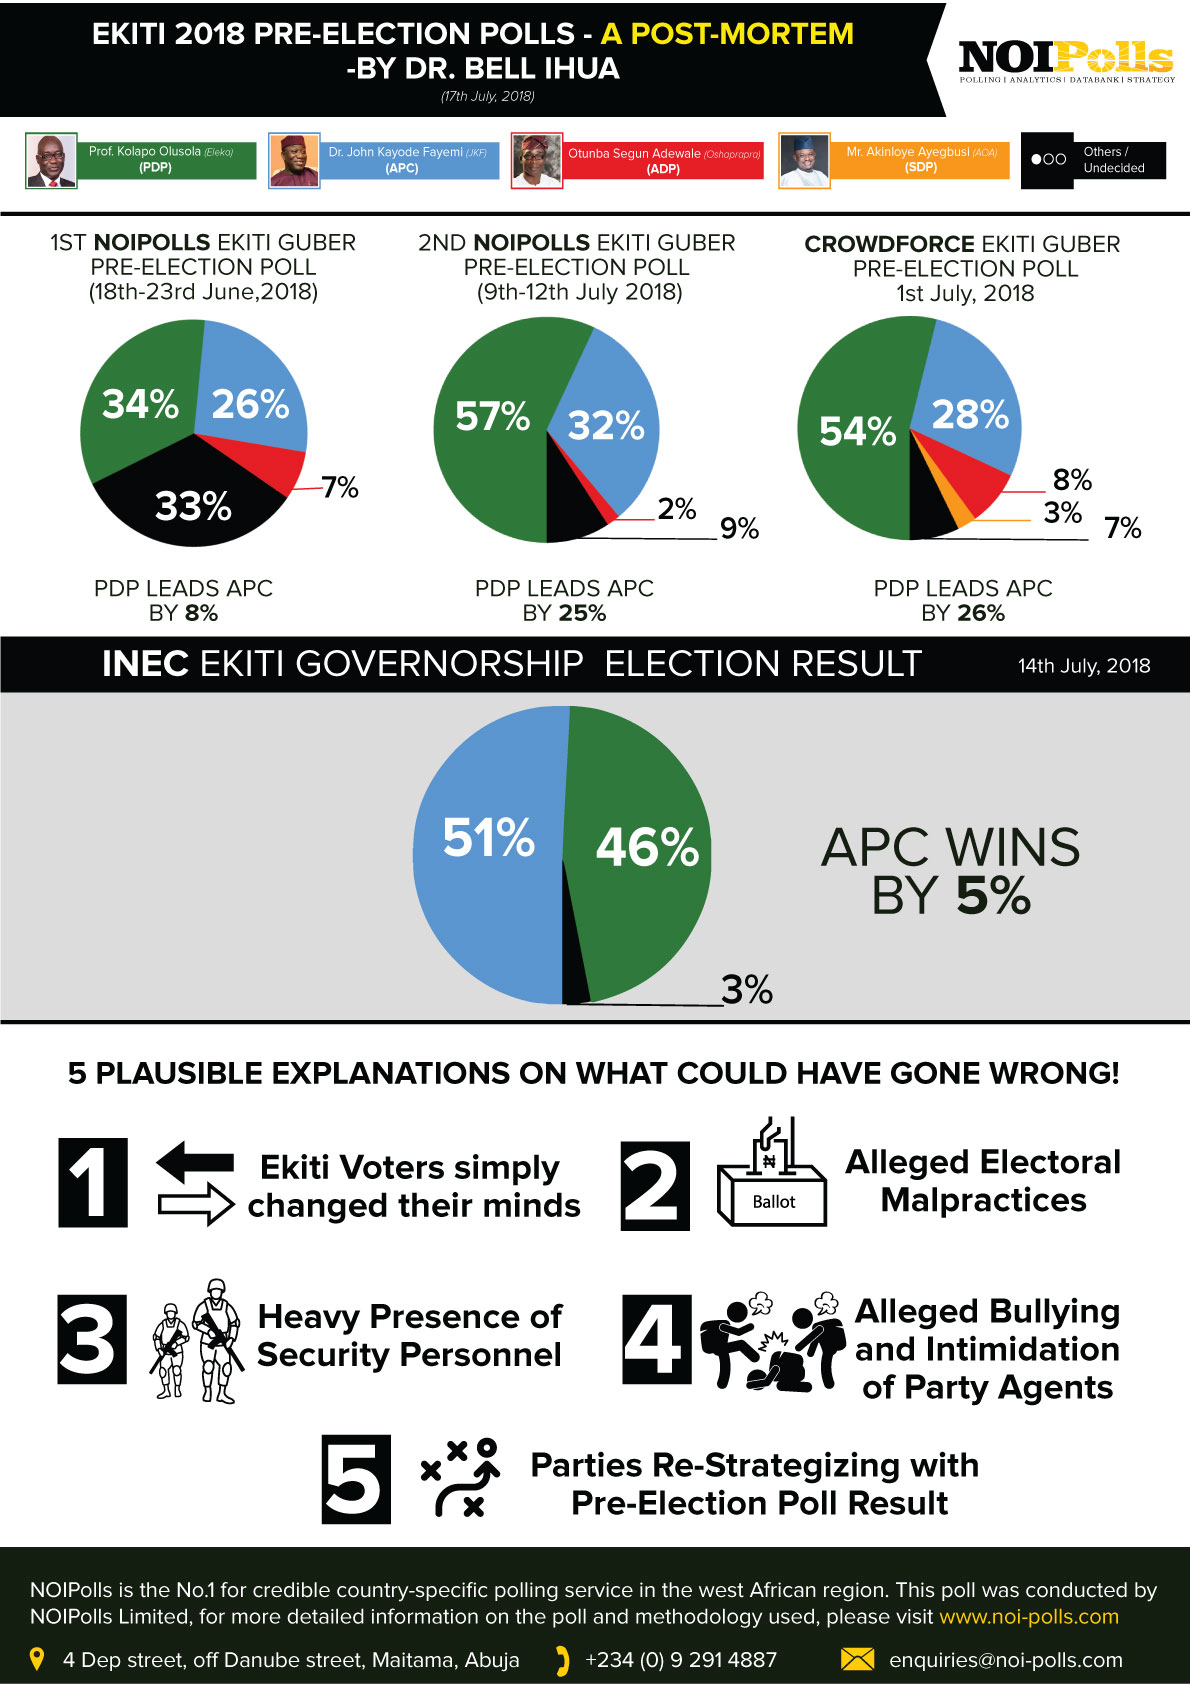 EKITI 2018 PRE-ELECTION POLLS: A POST-MORTEM - BY DR. BELL IHUA (Infographs) - Brand Spur